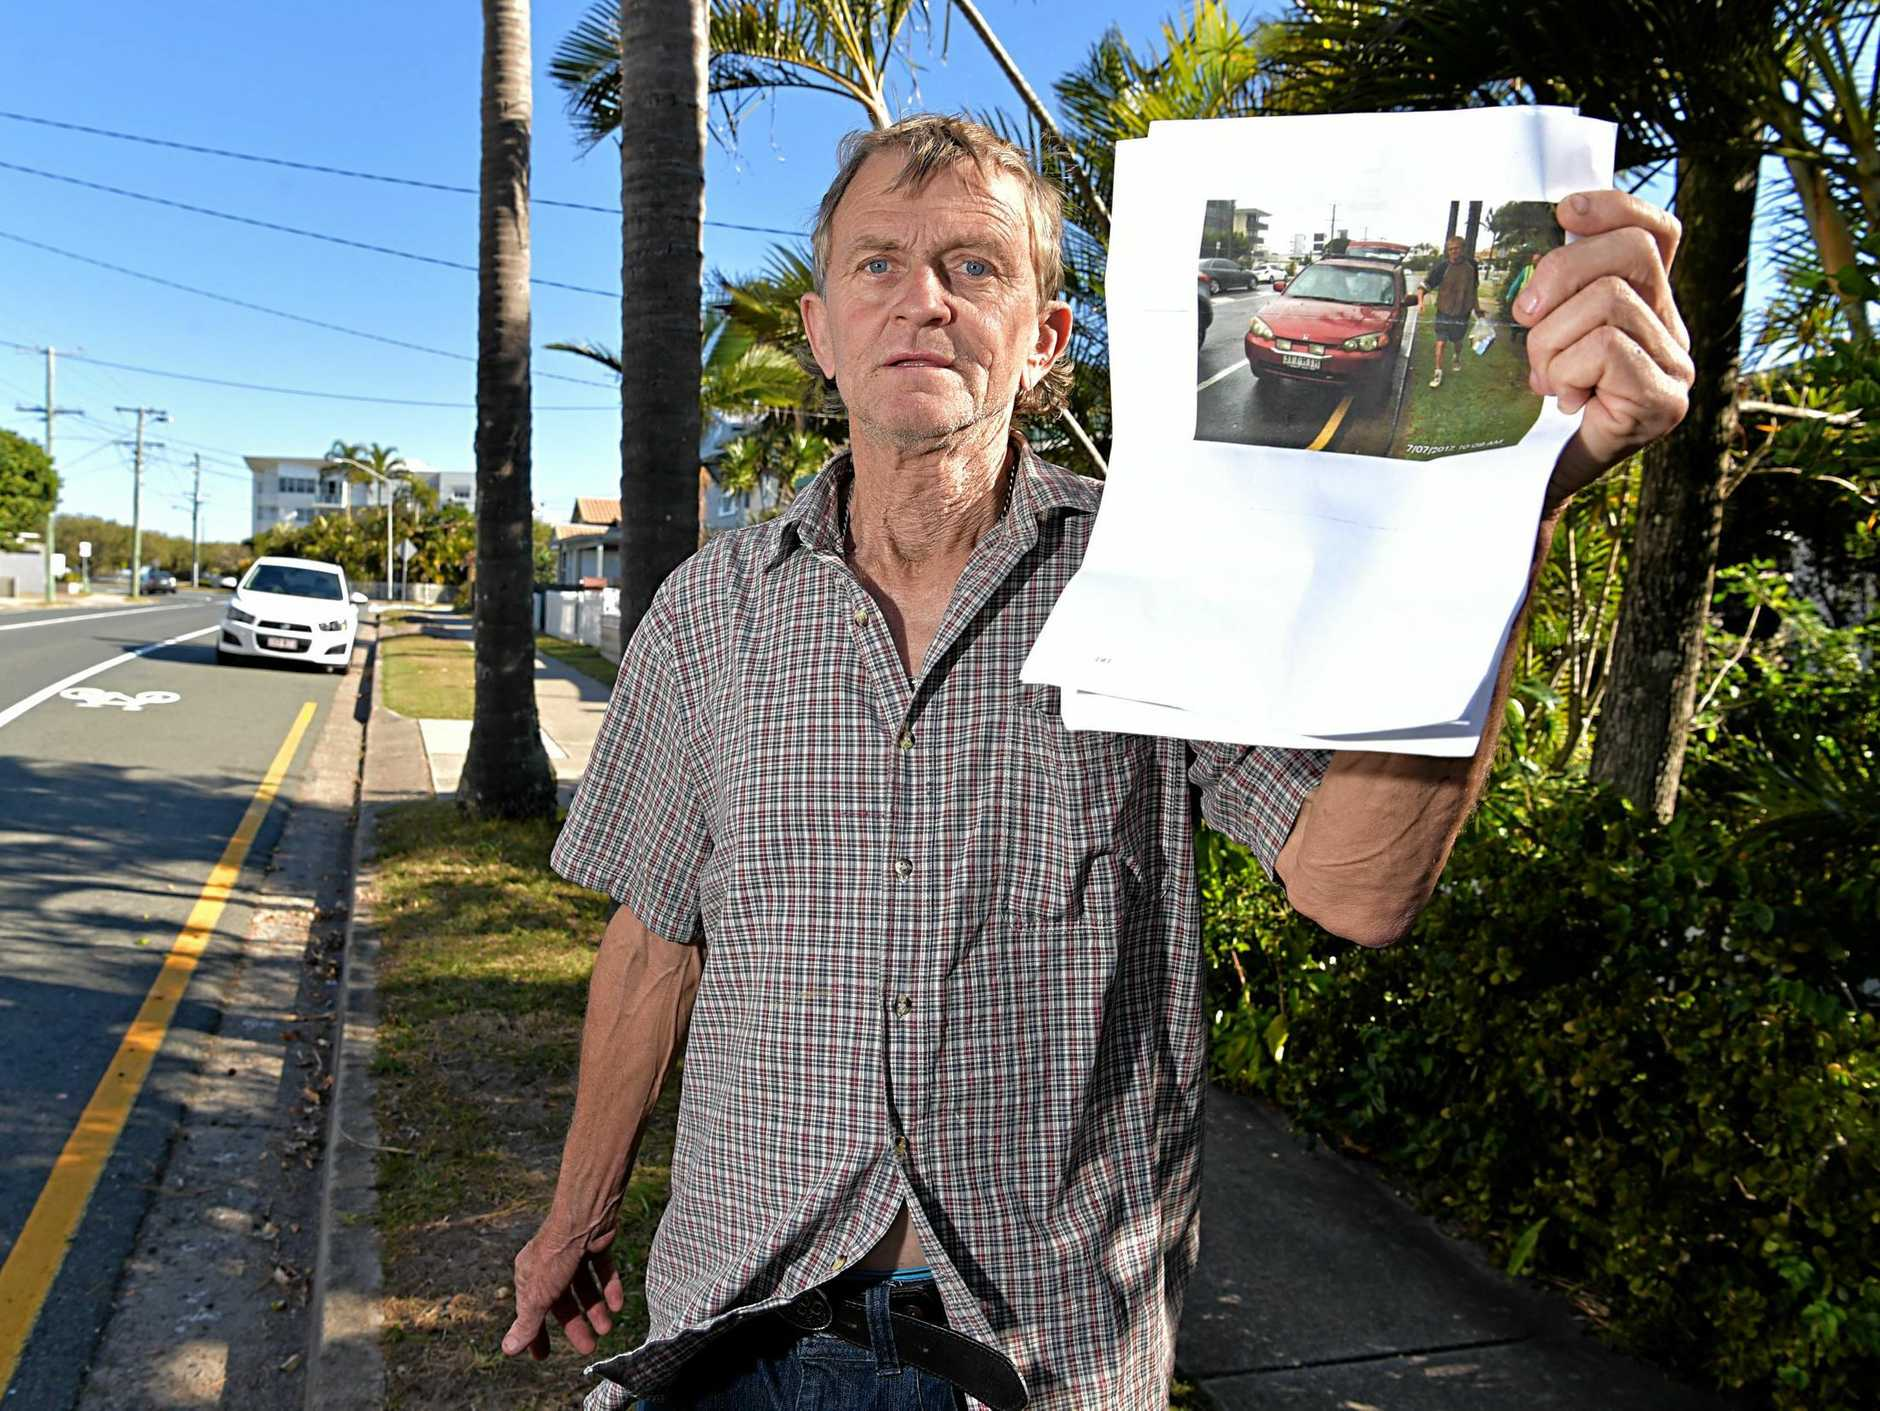 Peter Pearce is going to fight an infringement notice he was given for parking on a yellow line.